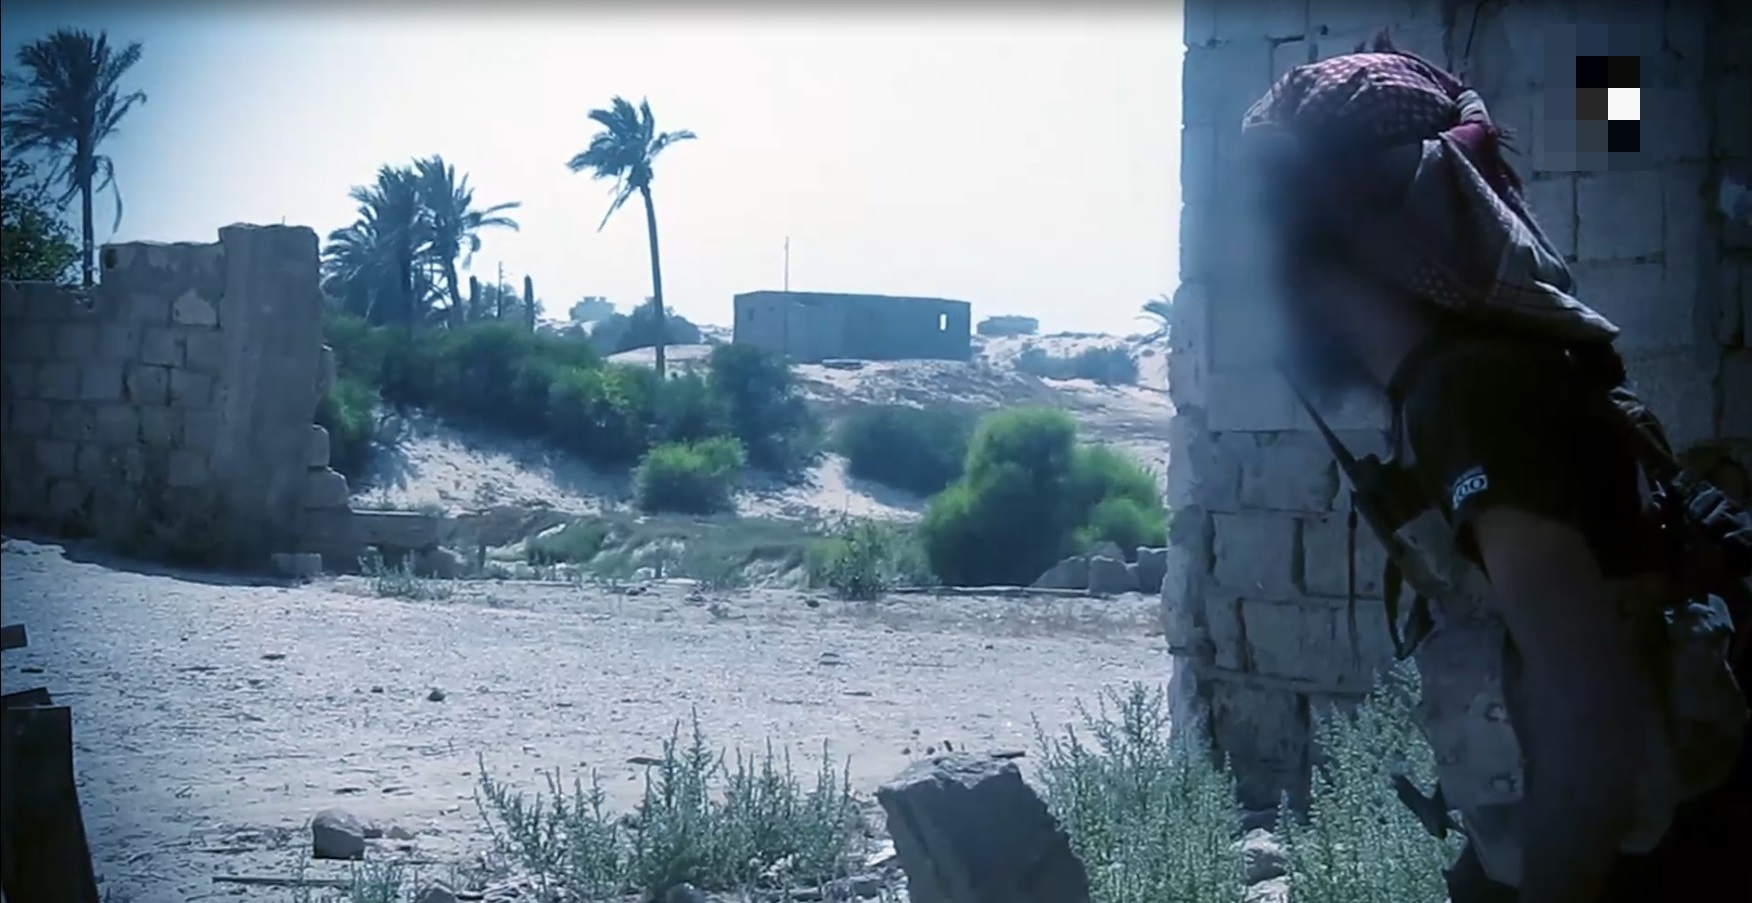 'Bleeding The Campaigns': New ISIS Release Exposes Fragile Situation In Egypt's Sinai